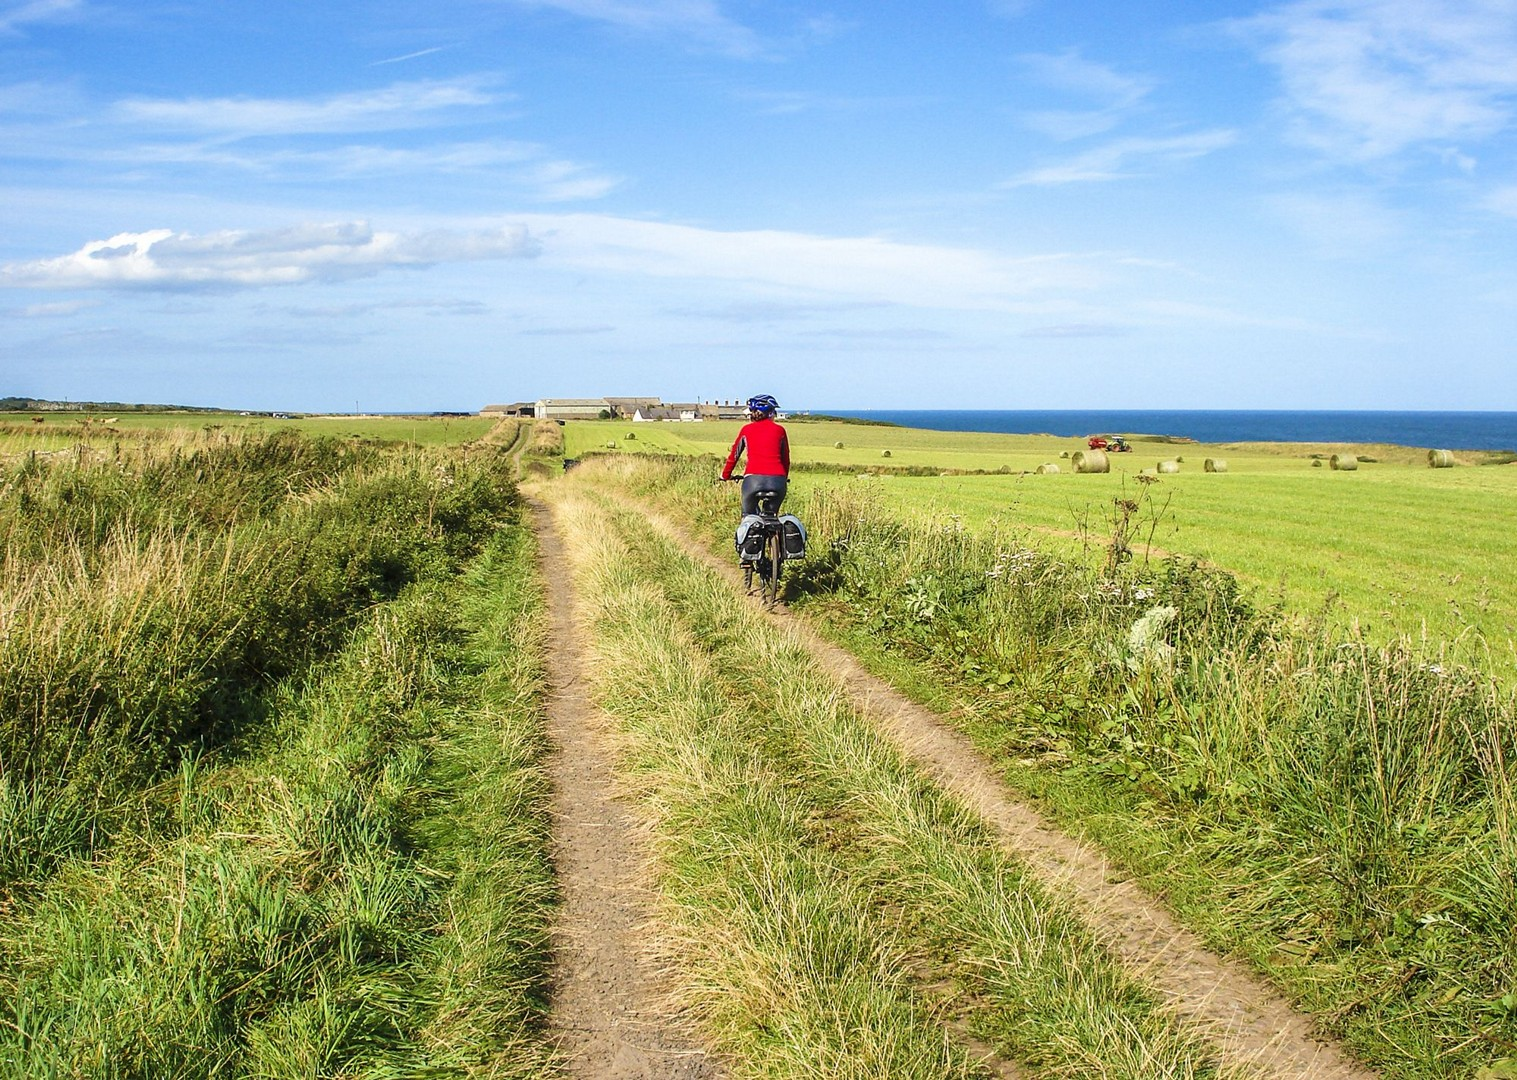 uk-coast-northumberland-cycling-rural-fields-tour-self-guided.jpg - UK - Northumberland - Alnmouth - Self-Guided Leisure Cycling Holiday - Leisure Cycling